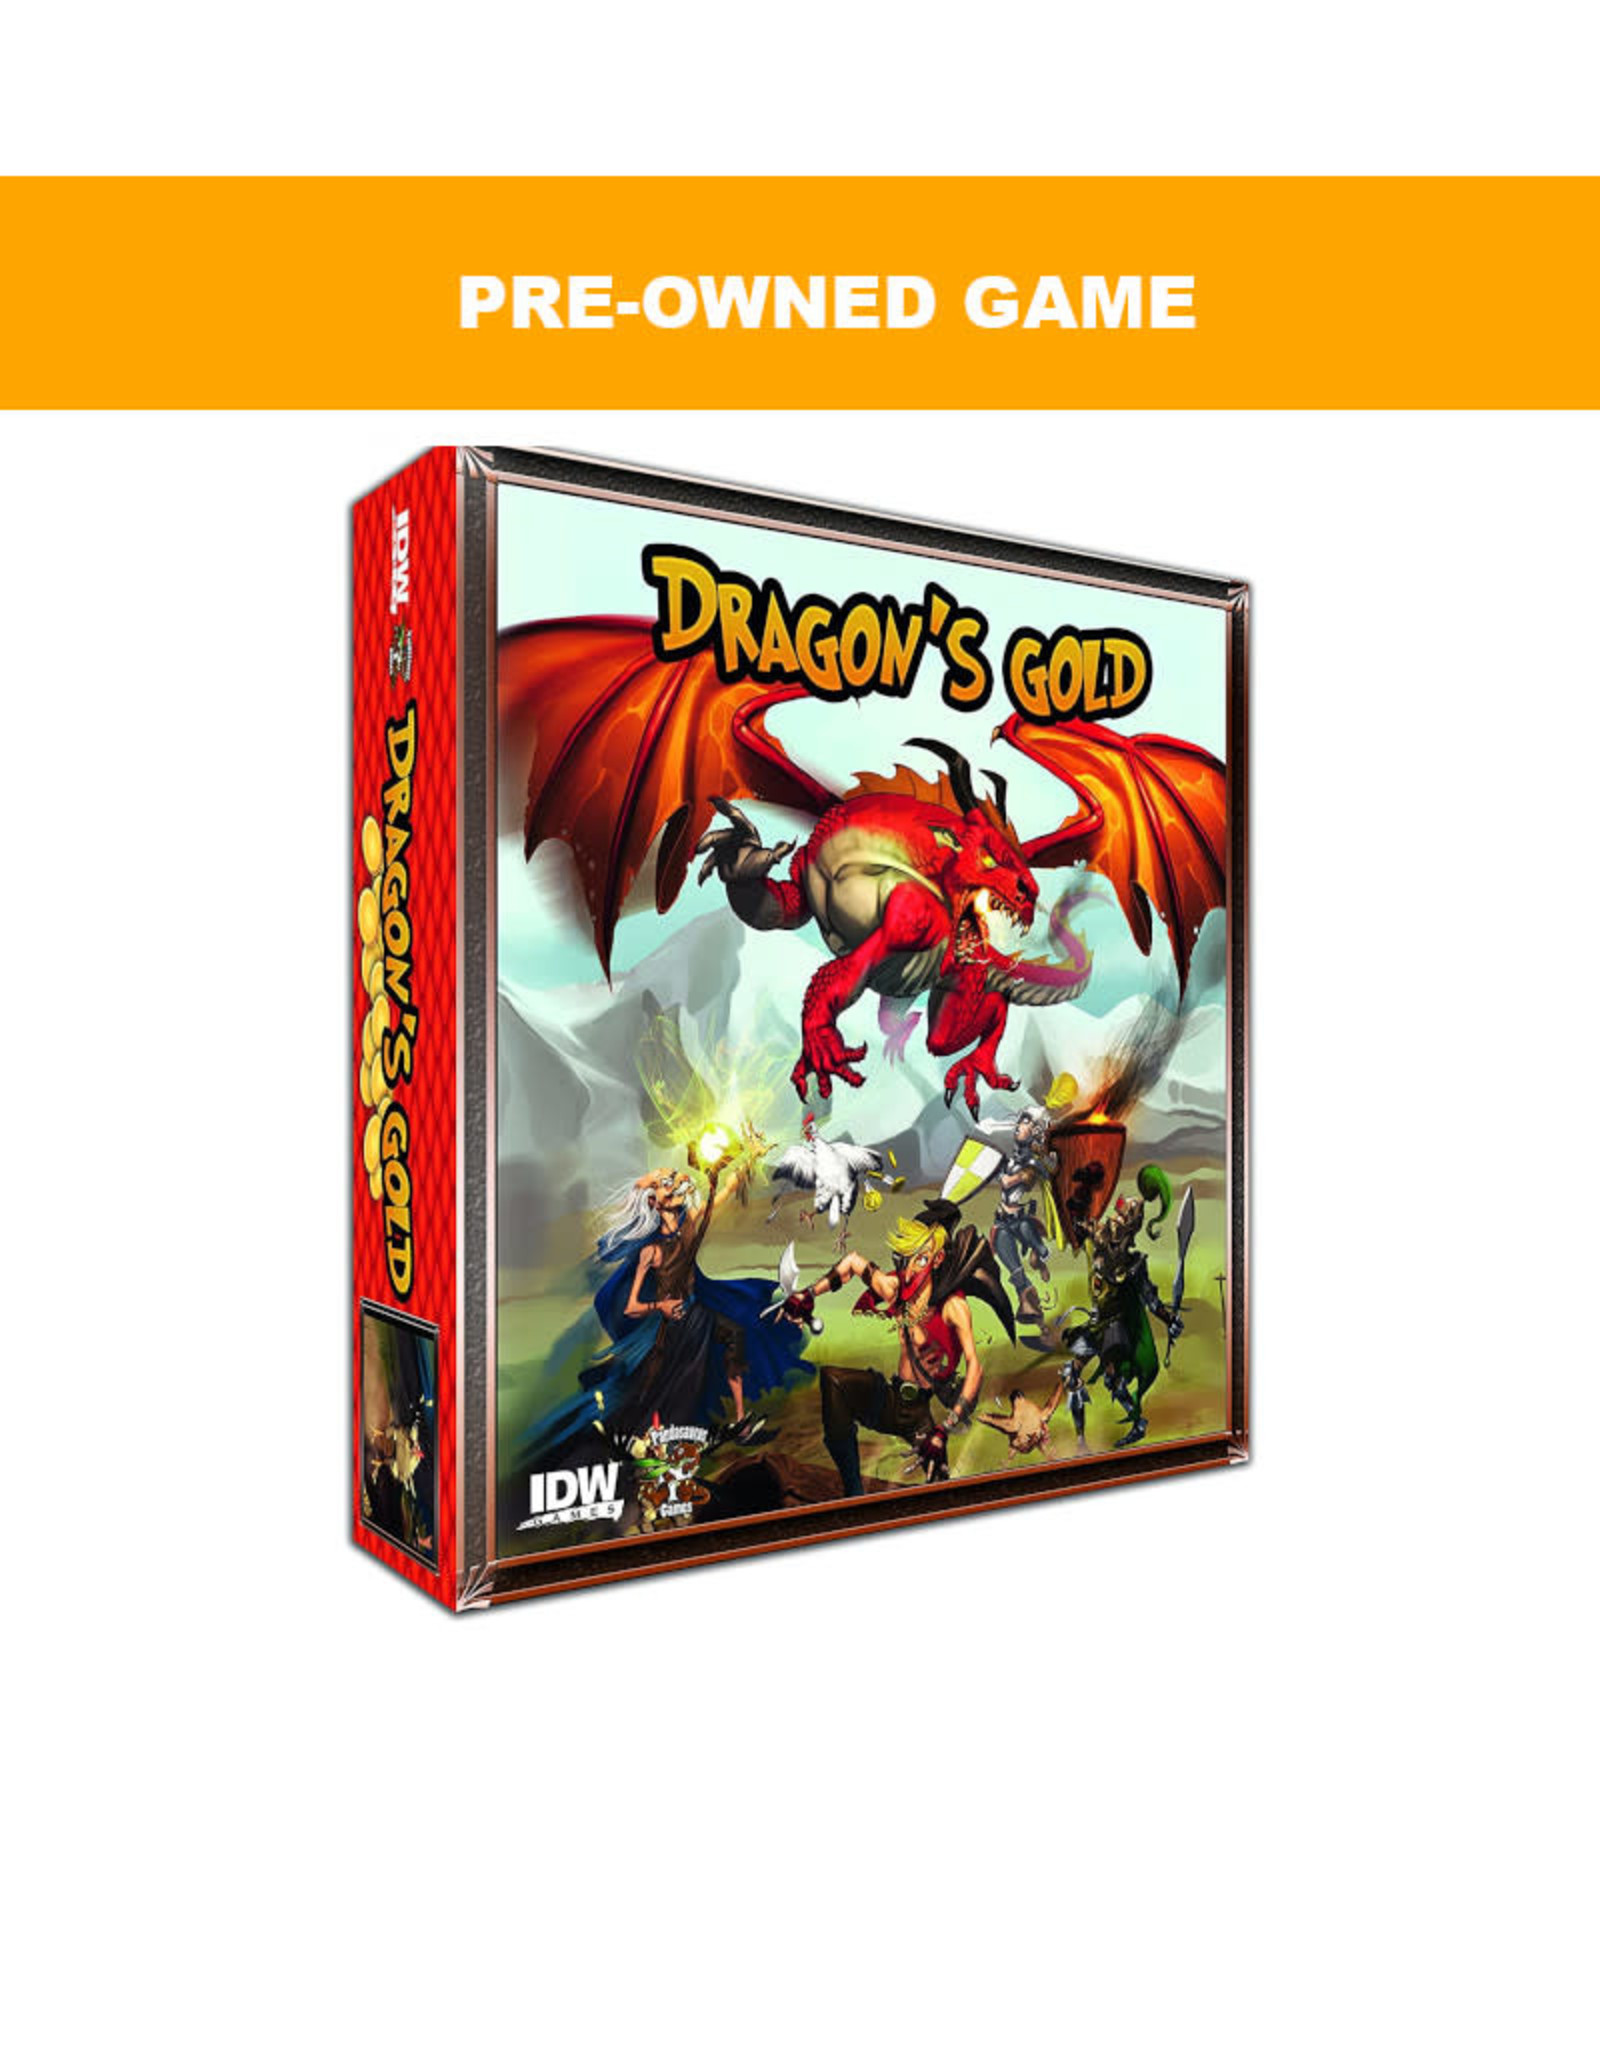 Game Night Games (Pre-Owned Game) Dragon's Gold